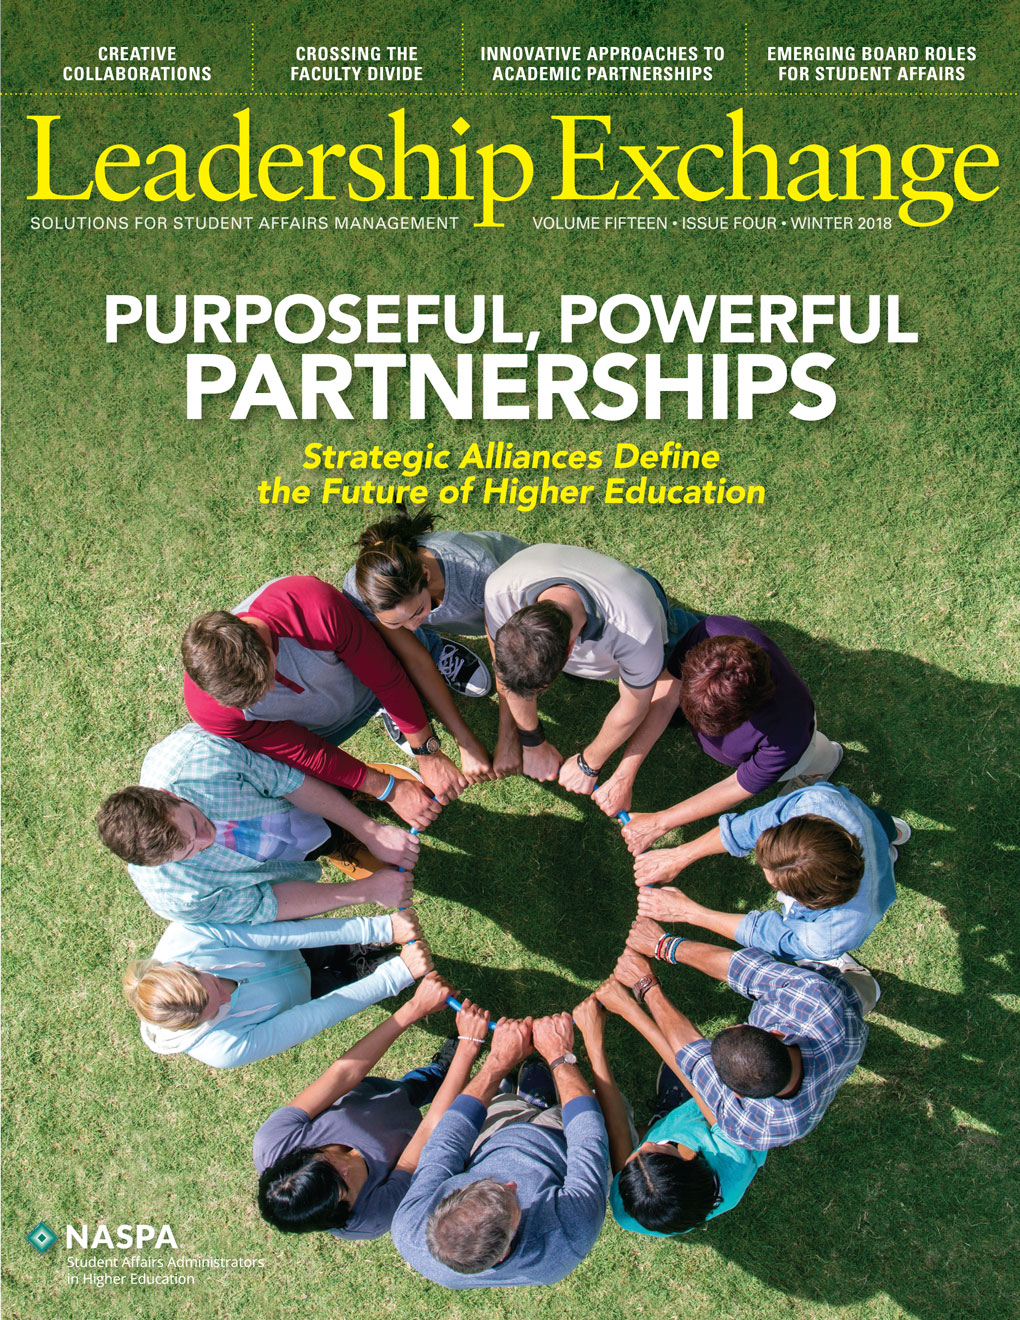 leadership-exchange-cover-image